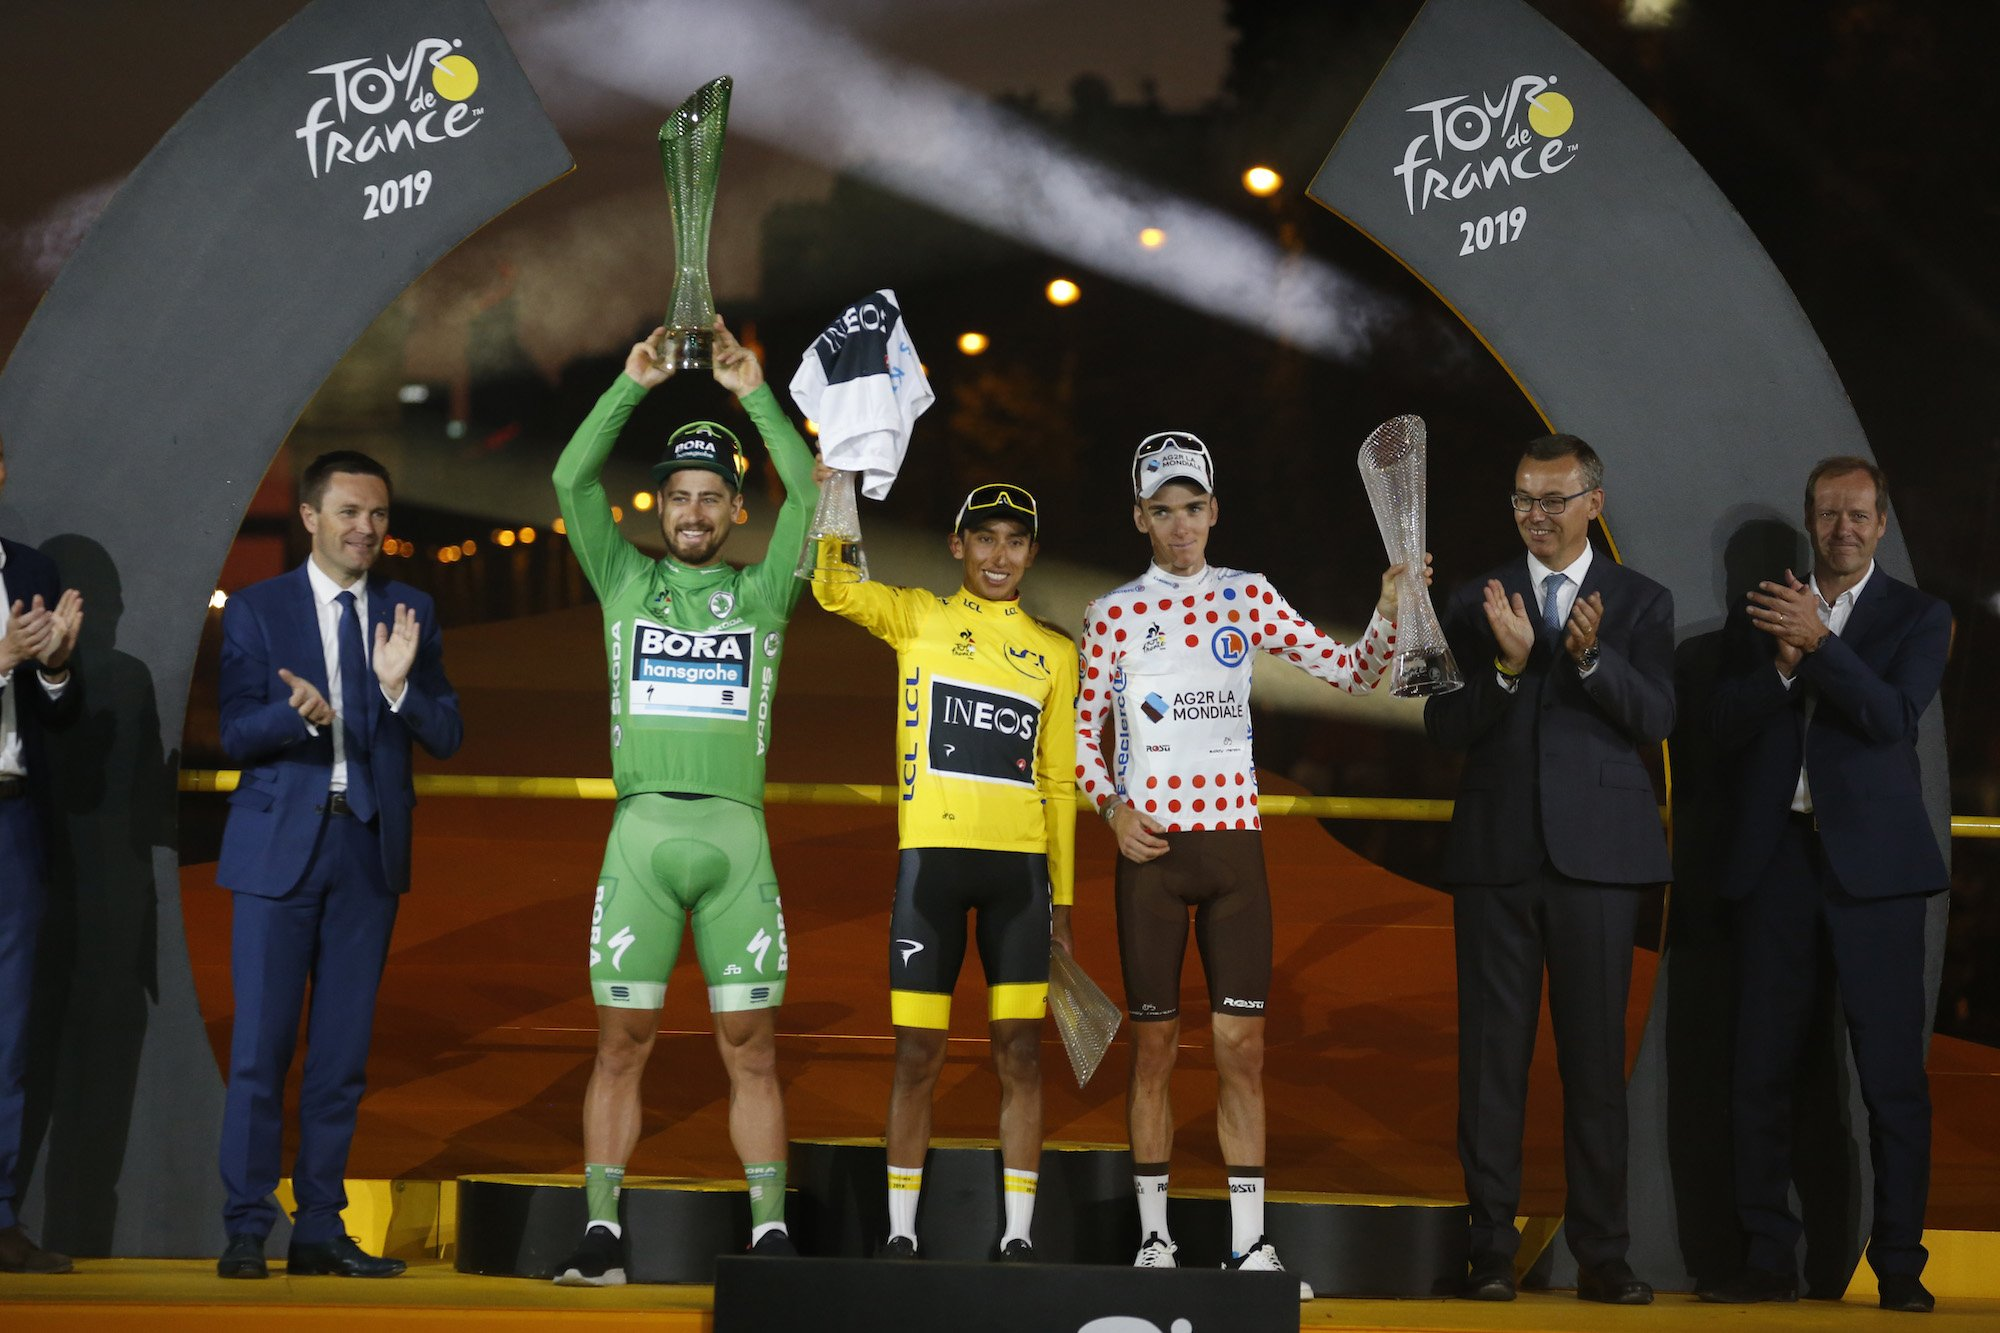 The memorable tour de france 2019 podium - Peter Sagan, Egan Bernal and Romain Bardet